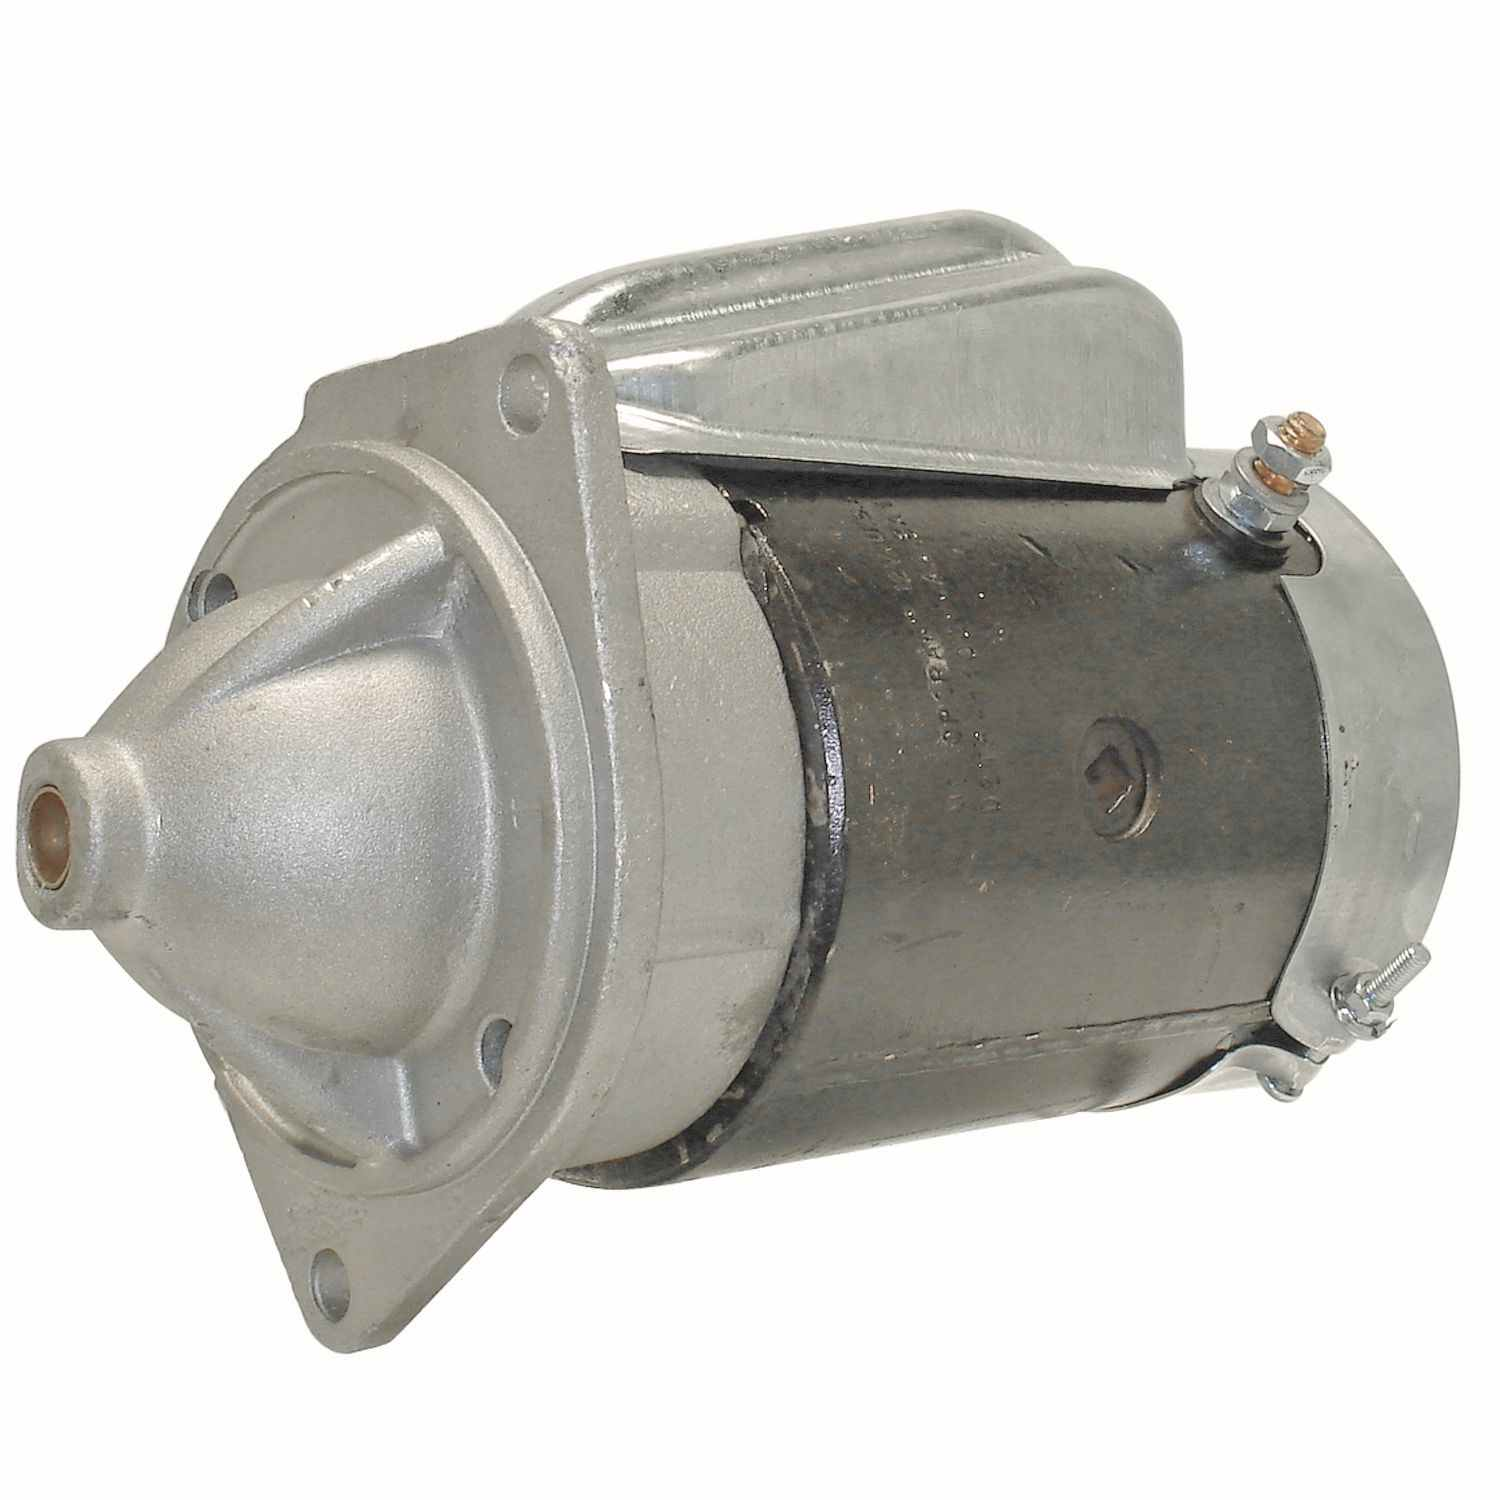 ACDELCO GOLD/PROFESSIONAL - Reman Starter Motor - DCC 336-1008